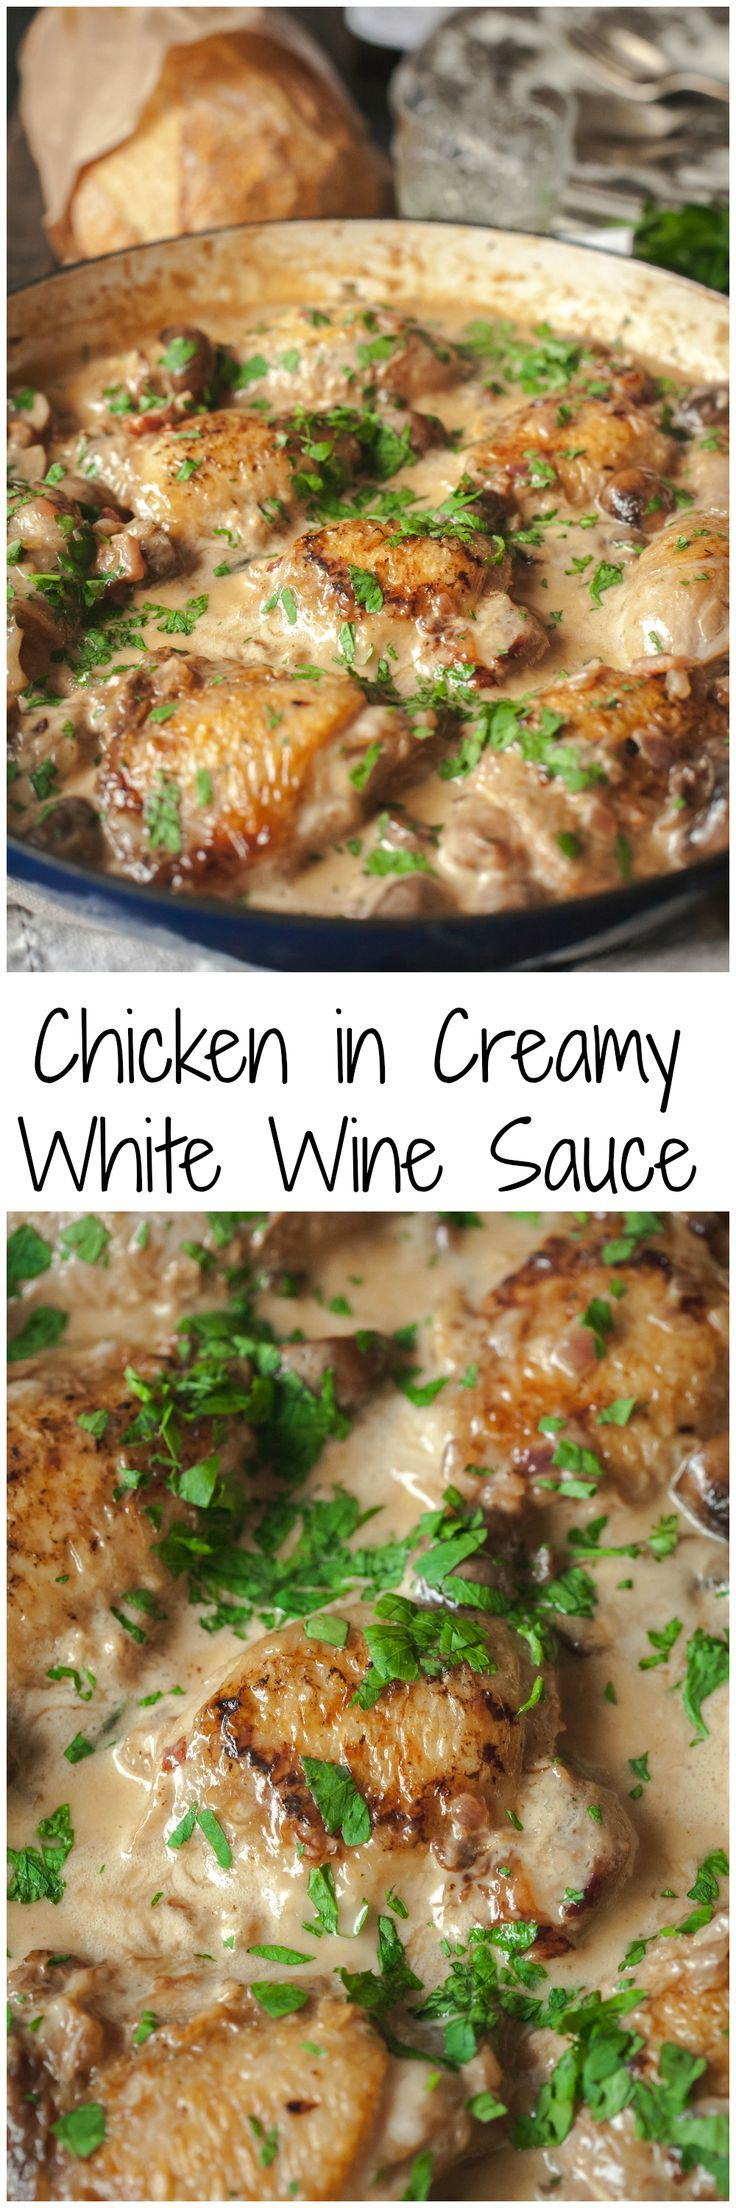 Succulent chicken with Cremini mushrooms cooked in white wine and a splash of cream.